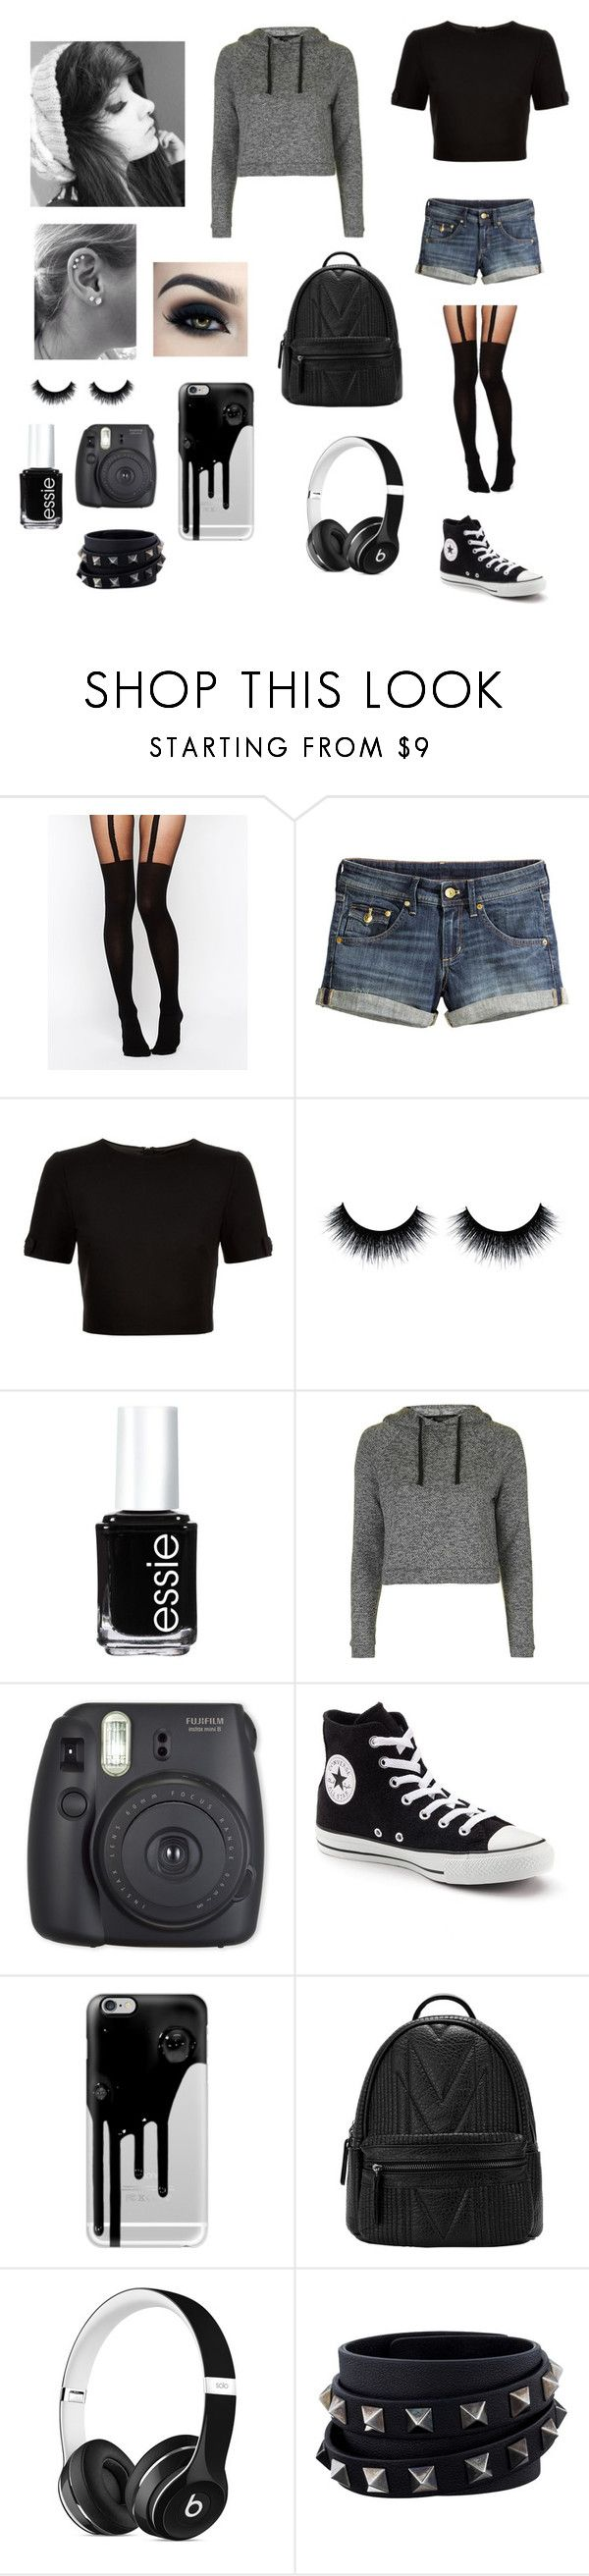 """""""Emo"""" by burusa2 ❤ liked on Polyvore featuring ASOS, H&M, Ted Baker, Essie, Topshop, Fuji, Converse, Casetify, Beats by Dr. Dre and Valentino"""